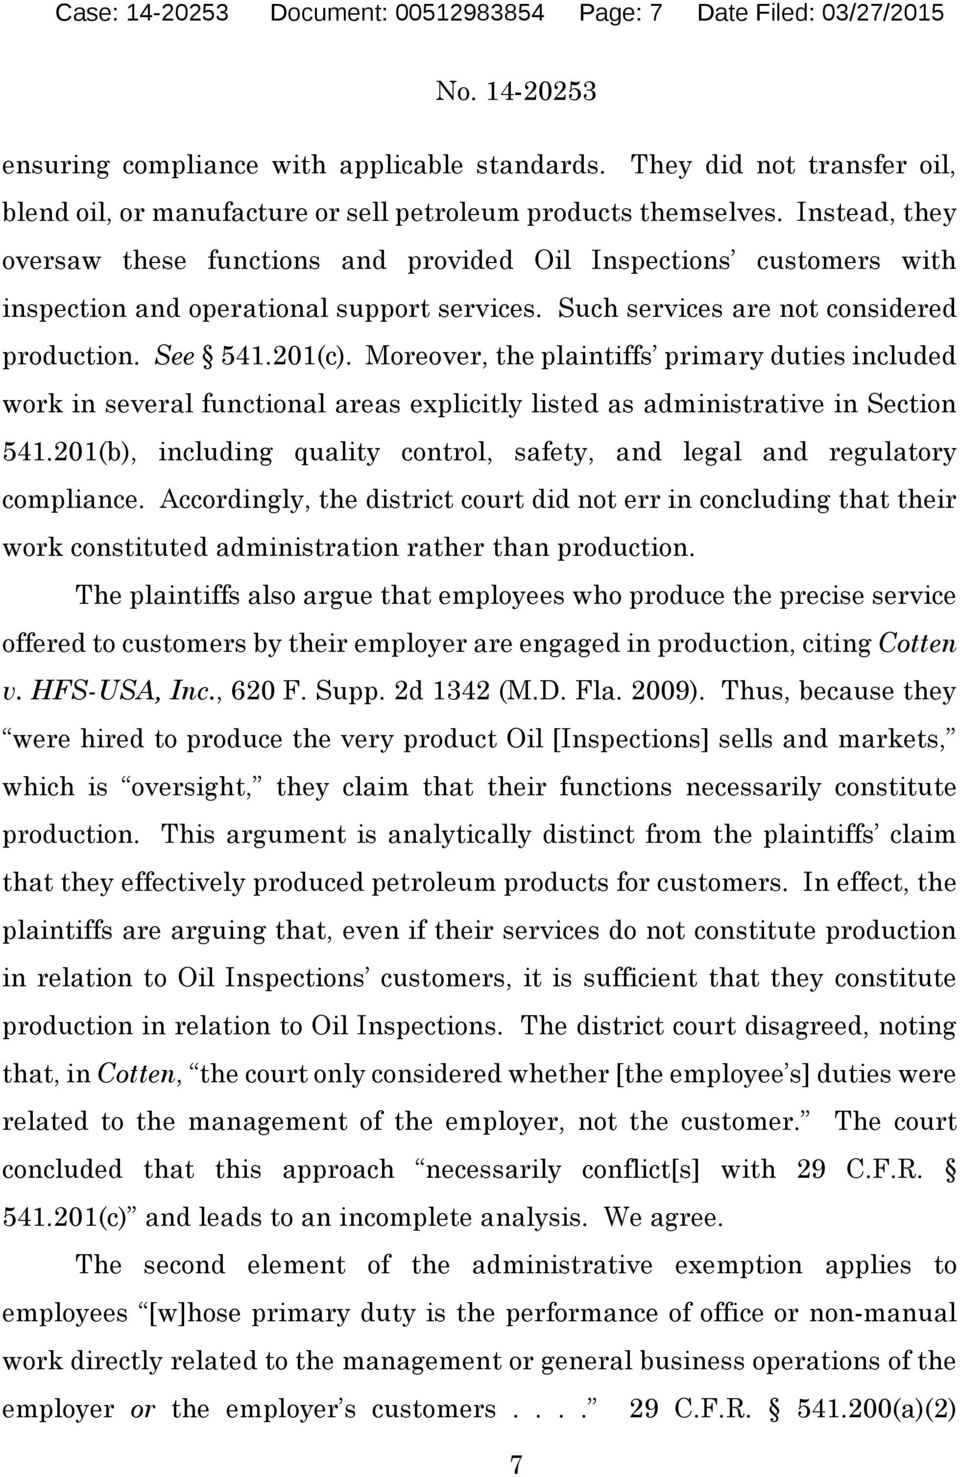 Instead, they oversaw these functions and provided Oil Inspections customers with inspection and operational support services. Such services are not considered production. See 541.201(c).